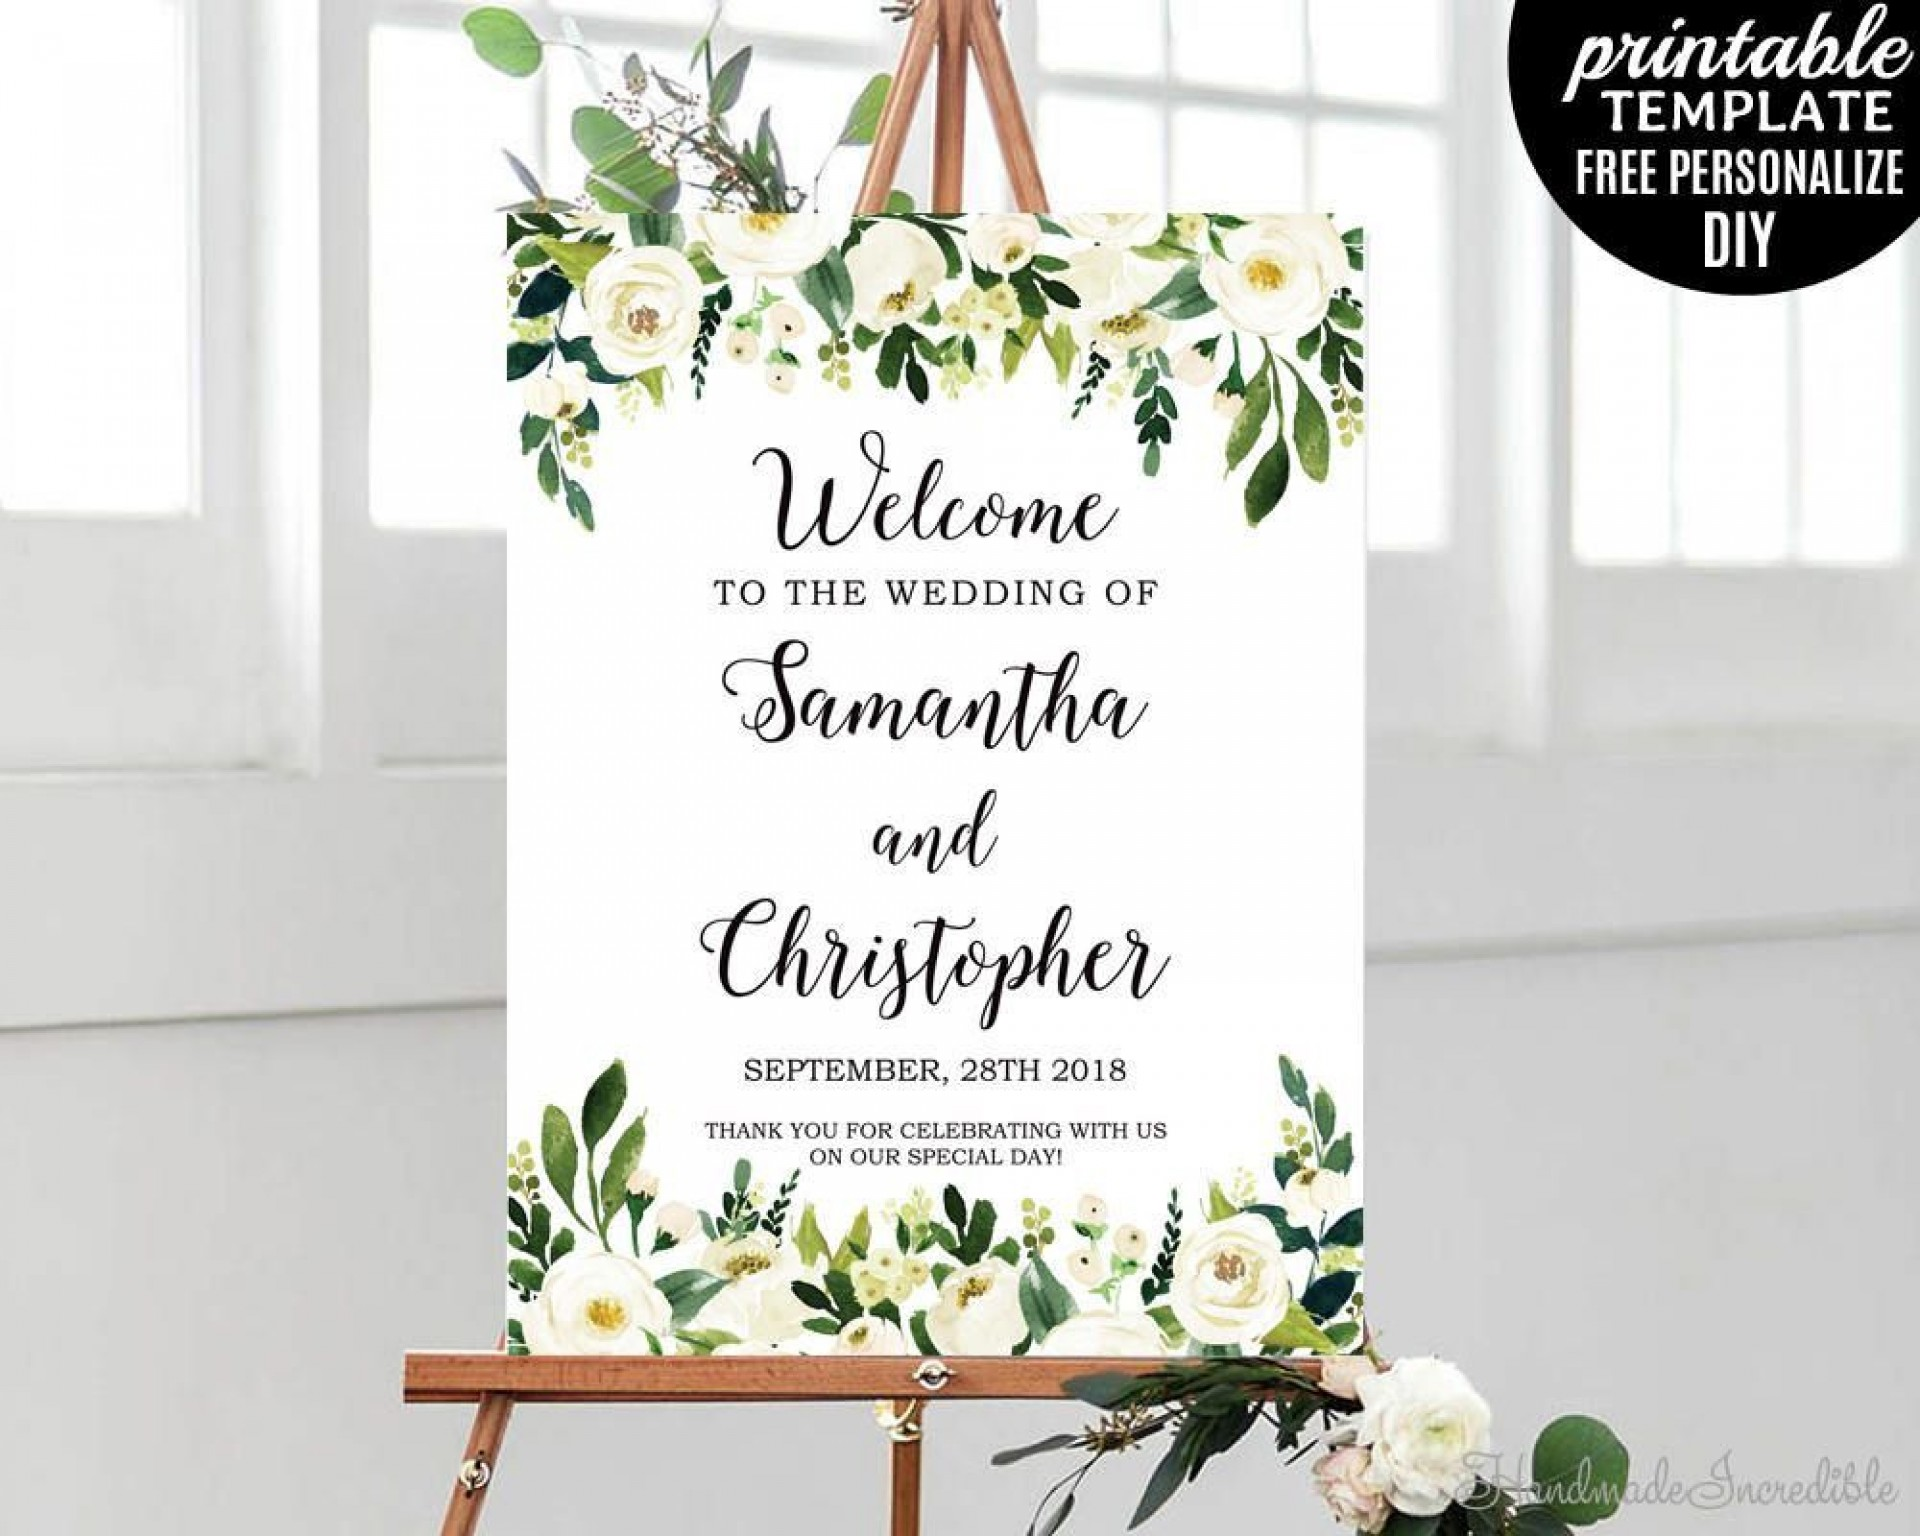 006 Exceptional Wedding Welcome Sign Template Free Inspiration 1920